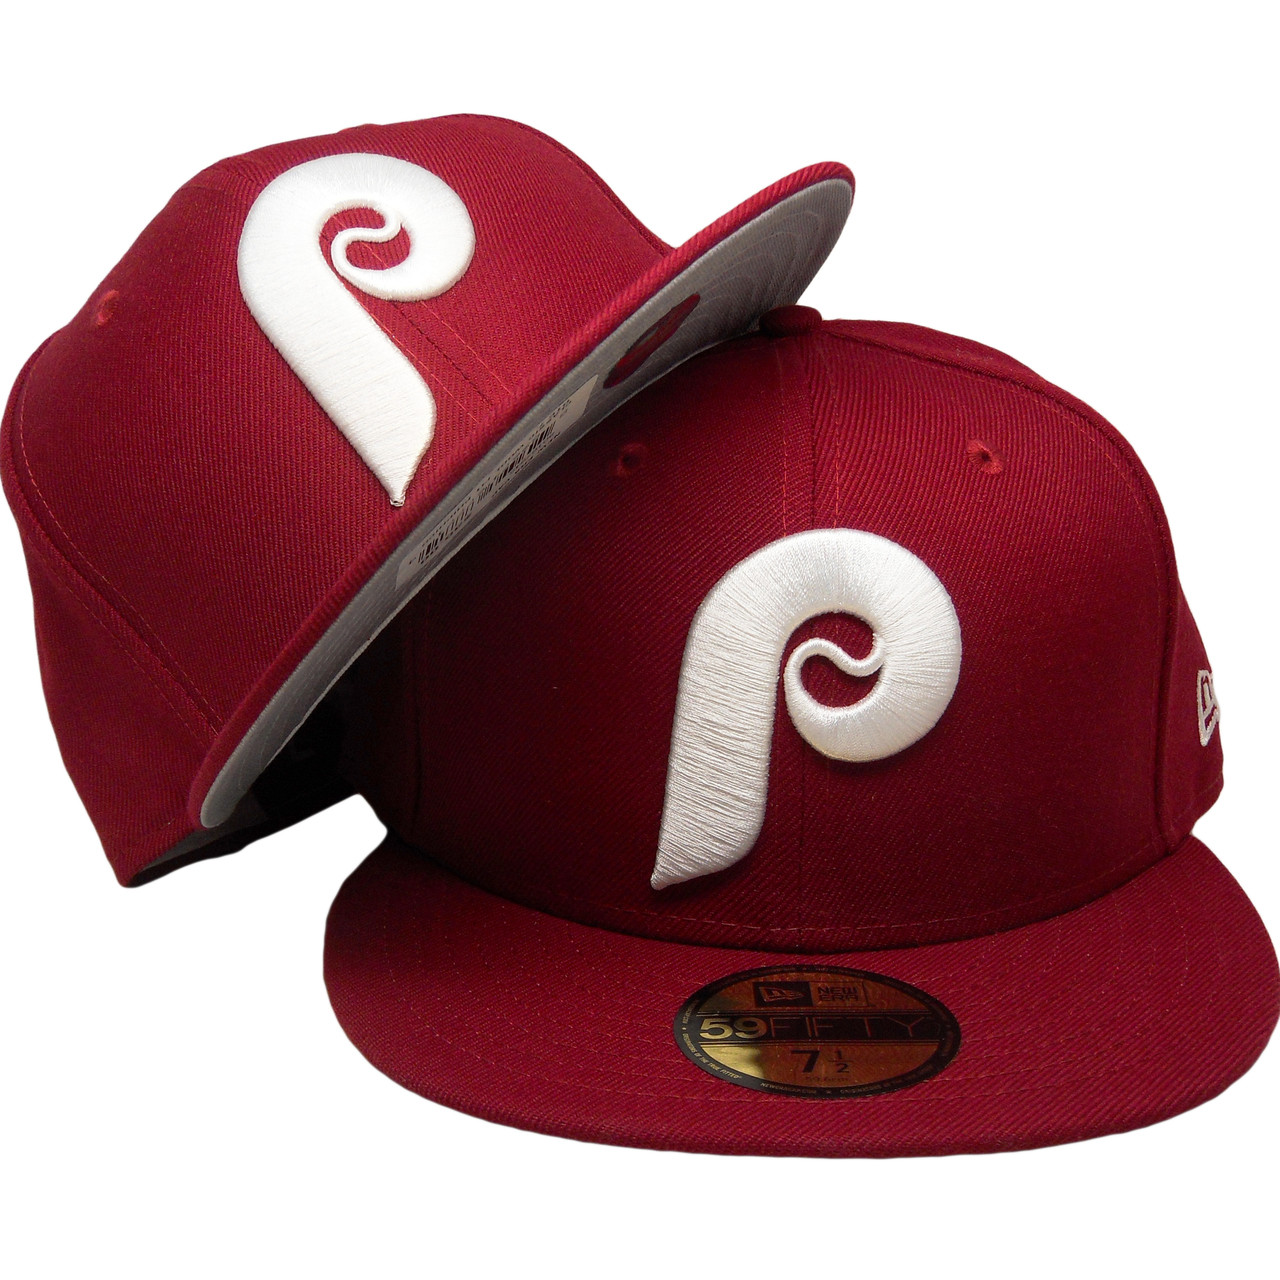 c5149cd6 Philadelphia Phillies New Era Classic Wool 59Fifty Fitted - Burgundy, White  - ECapsUnlimited.com